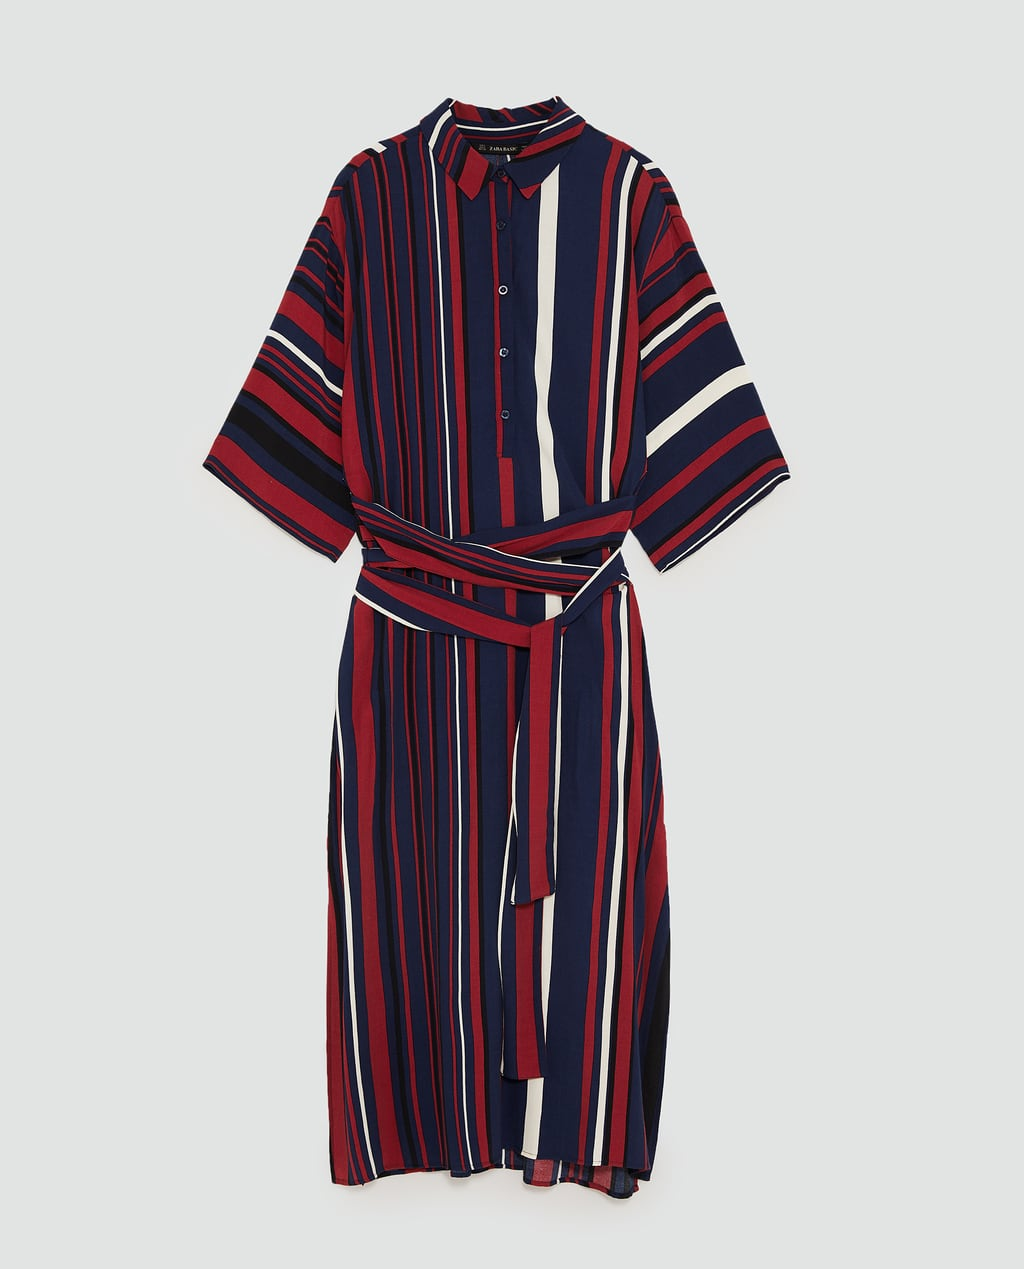 - Tunic with lapel collar and sleeves that reach below the elbow. Features a crossed fabric belt detail in the front, side slits at the hem and button fastening in the front.